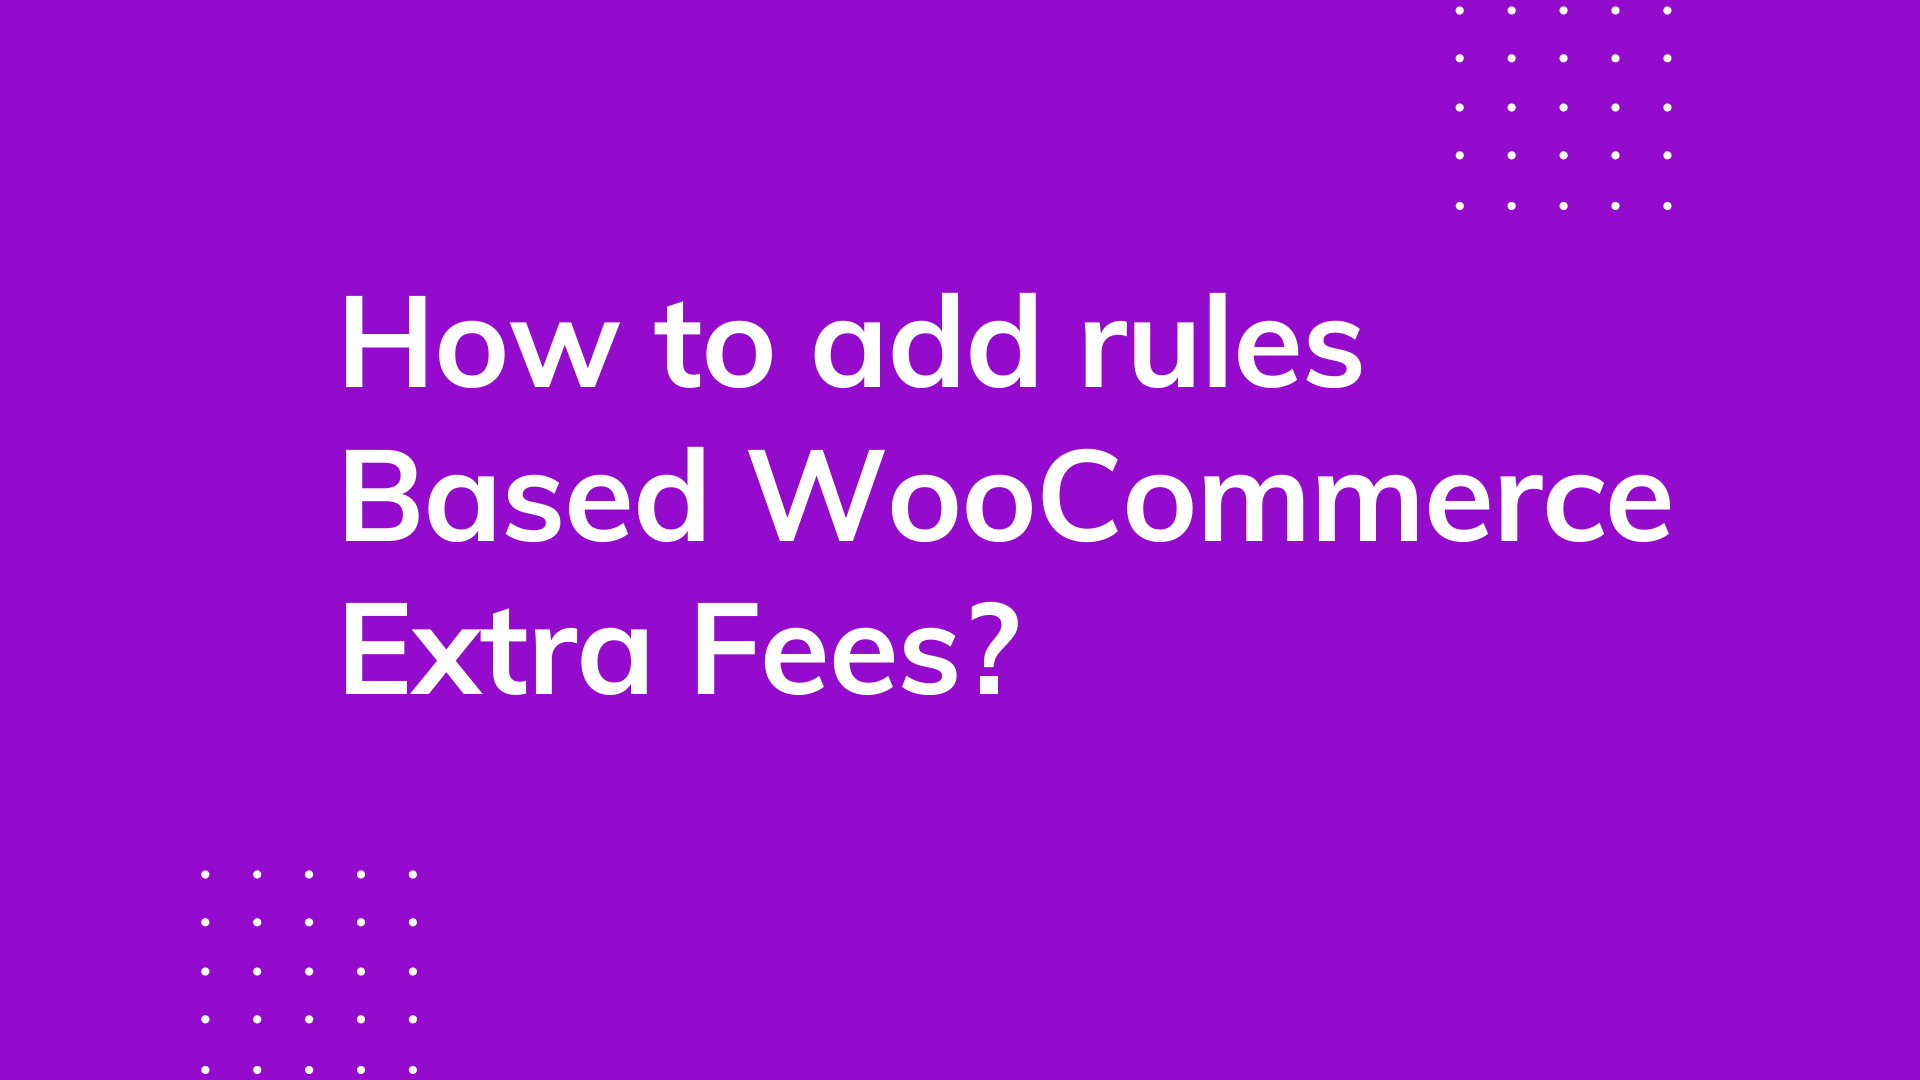 How to add rules based WooCommerce extra fees?